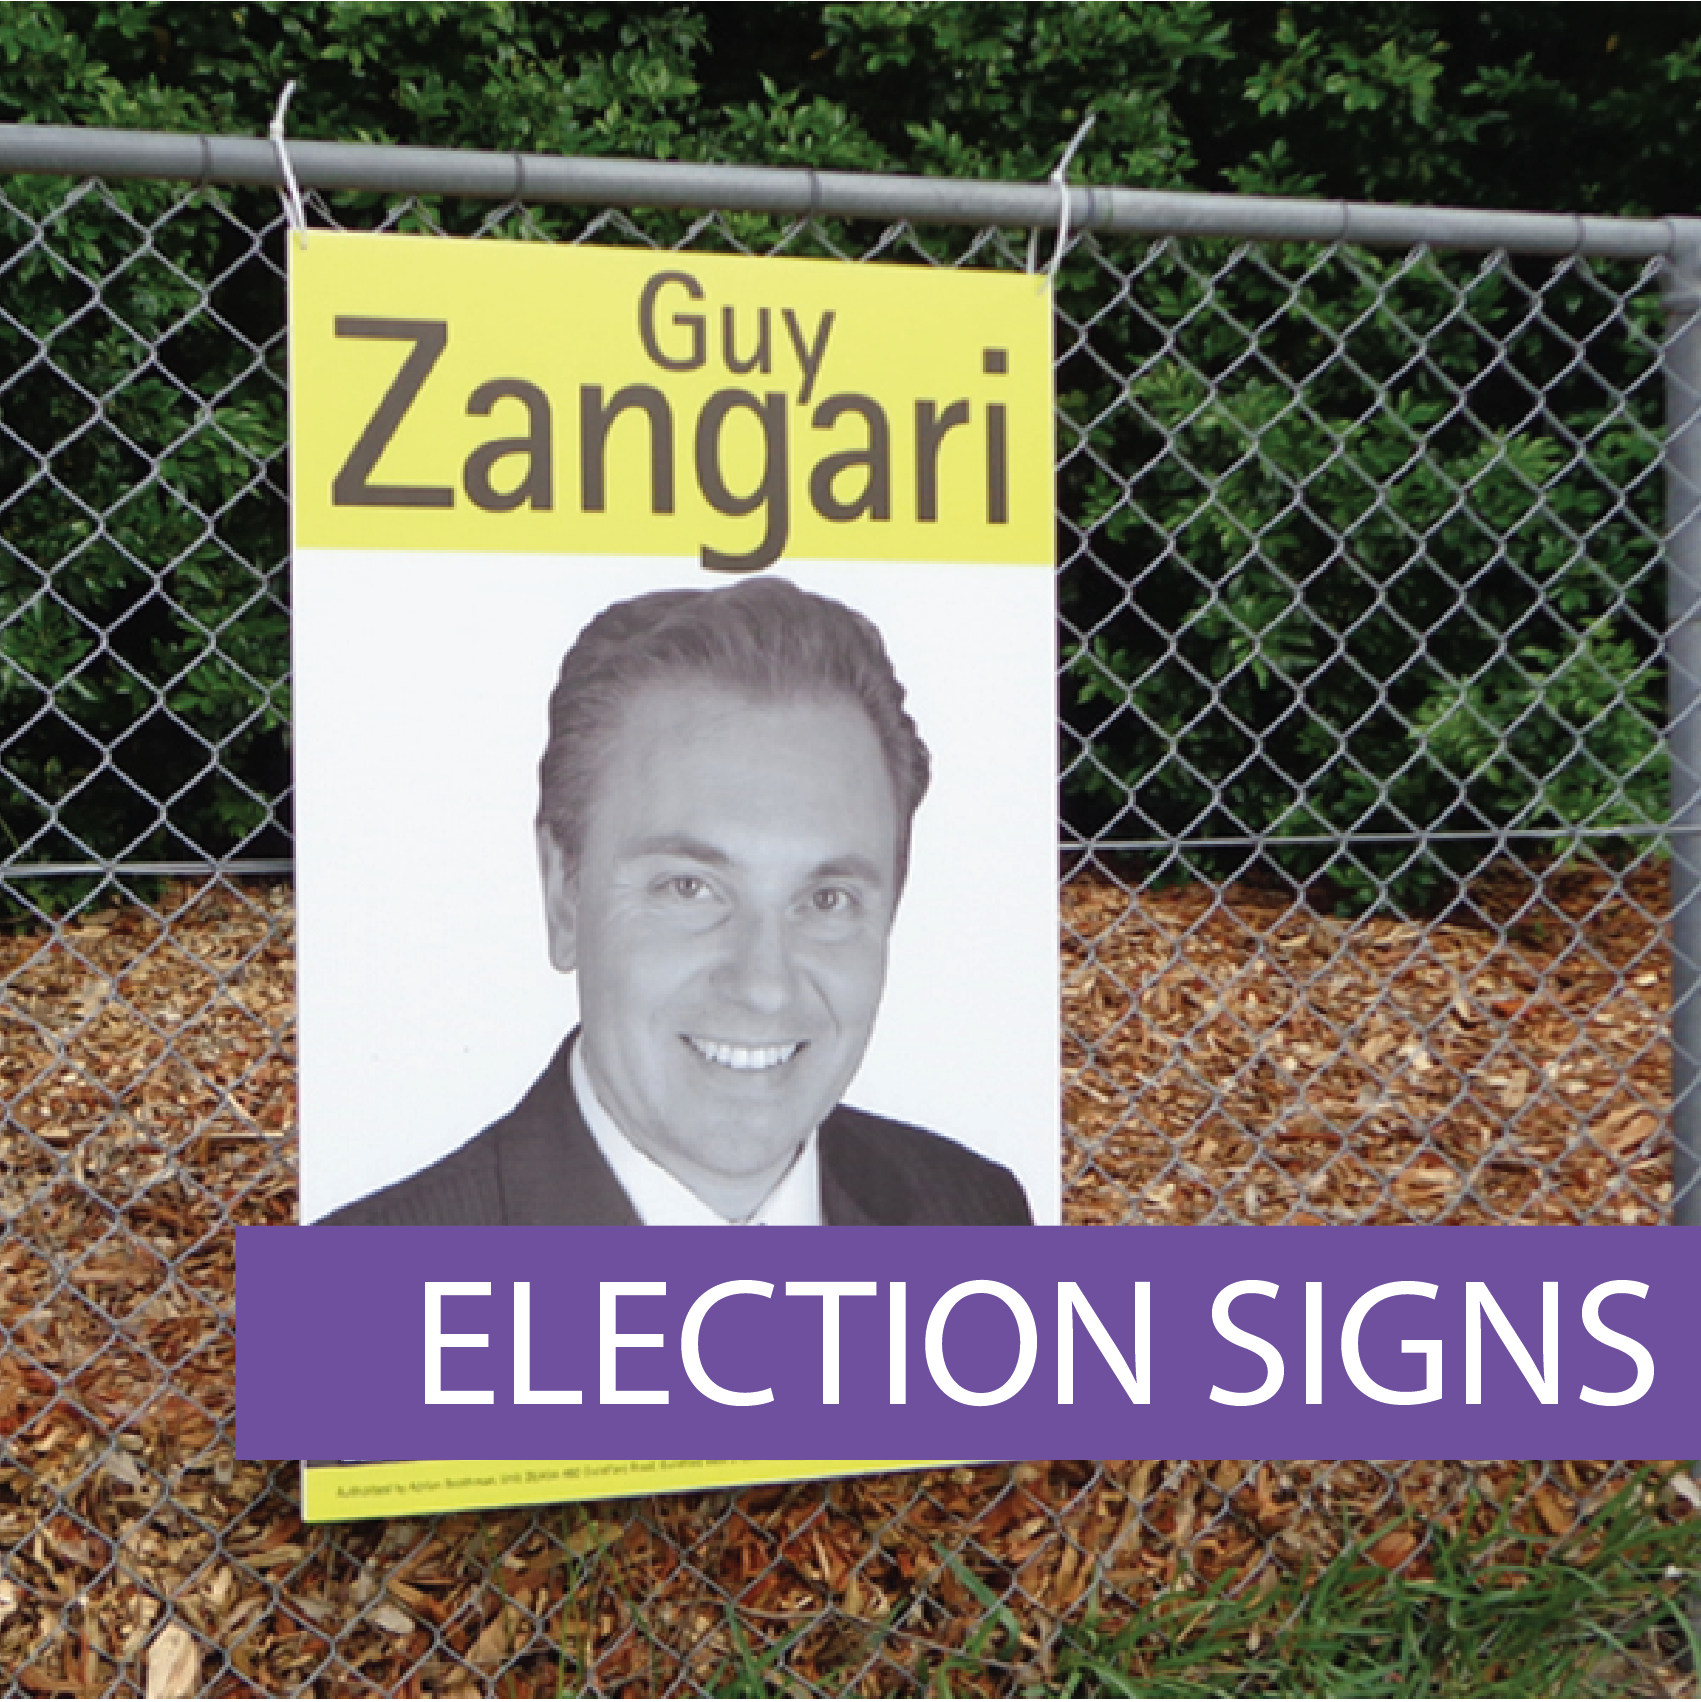 Political party signs